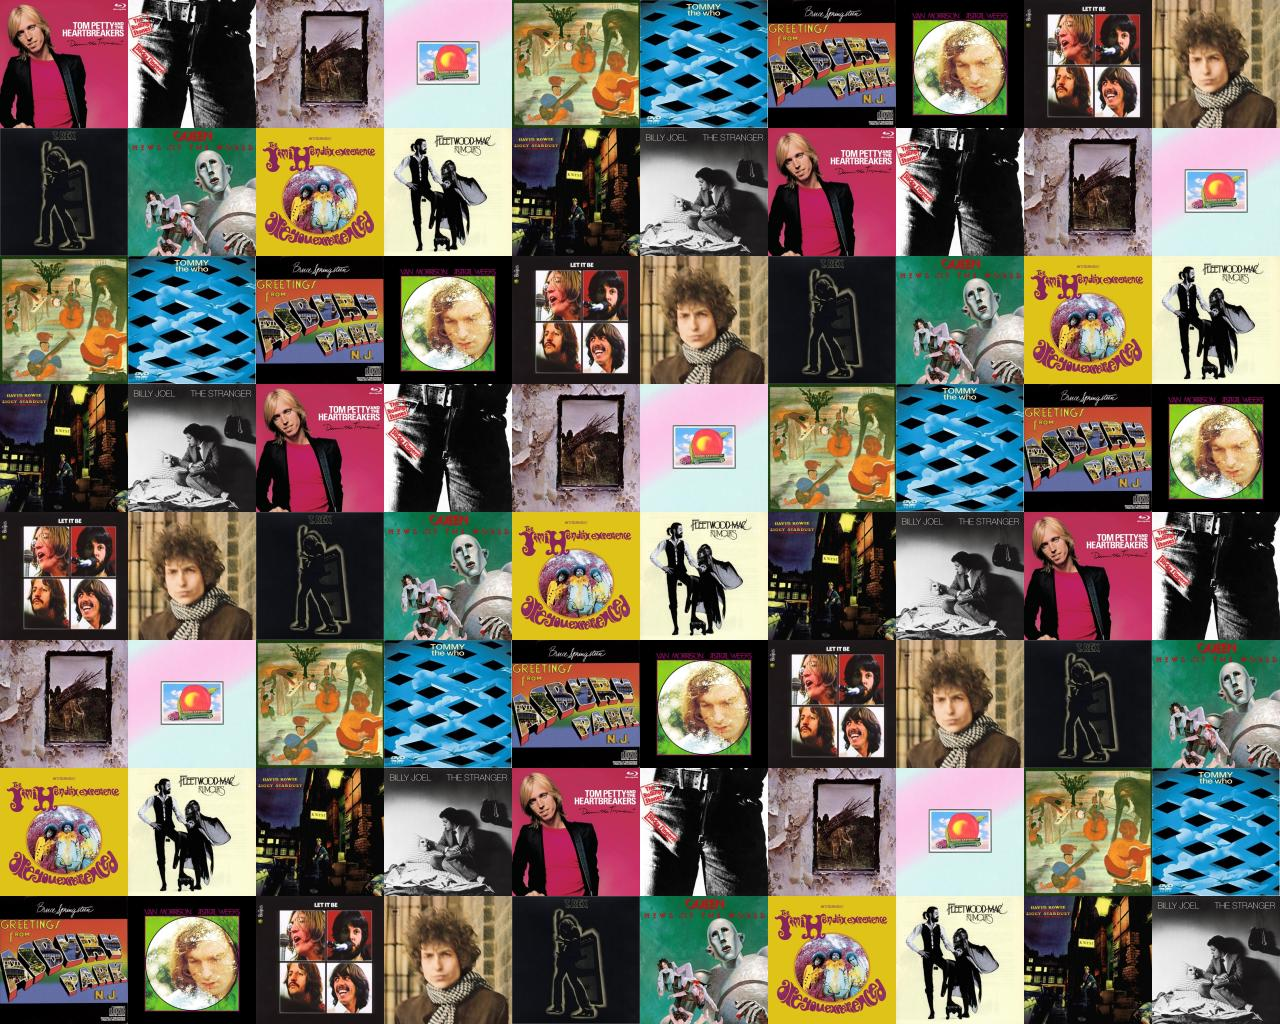 Tom Petty Heartbreakers Damn Torpedoes The Rolling Stones